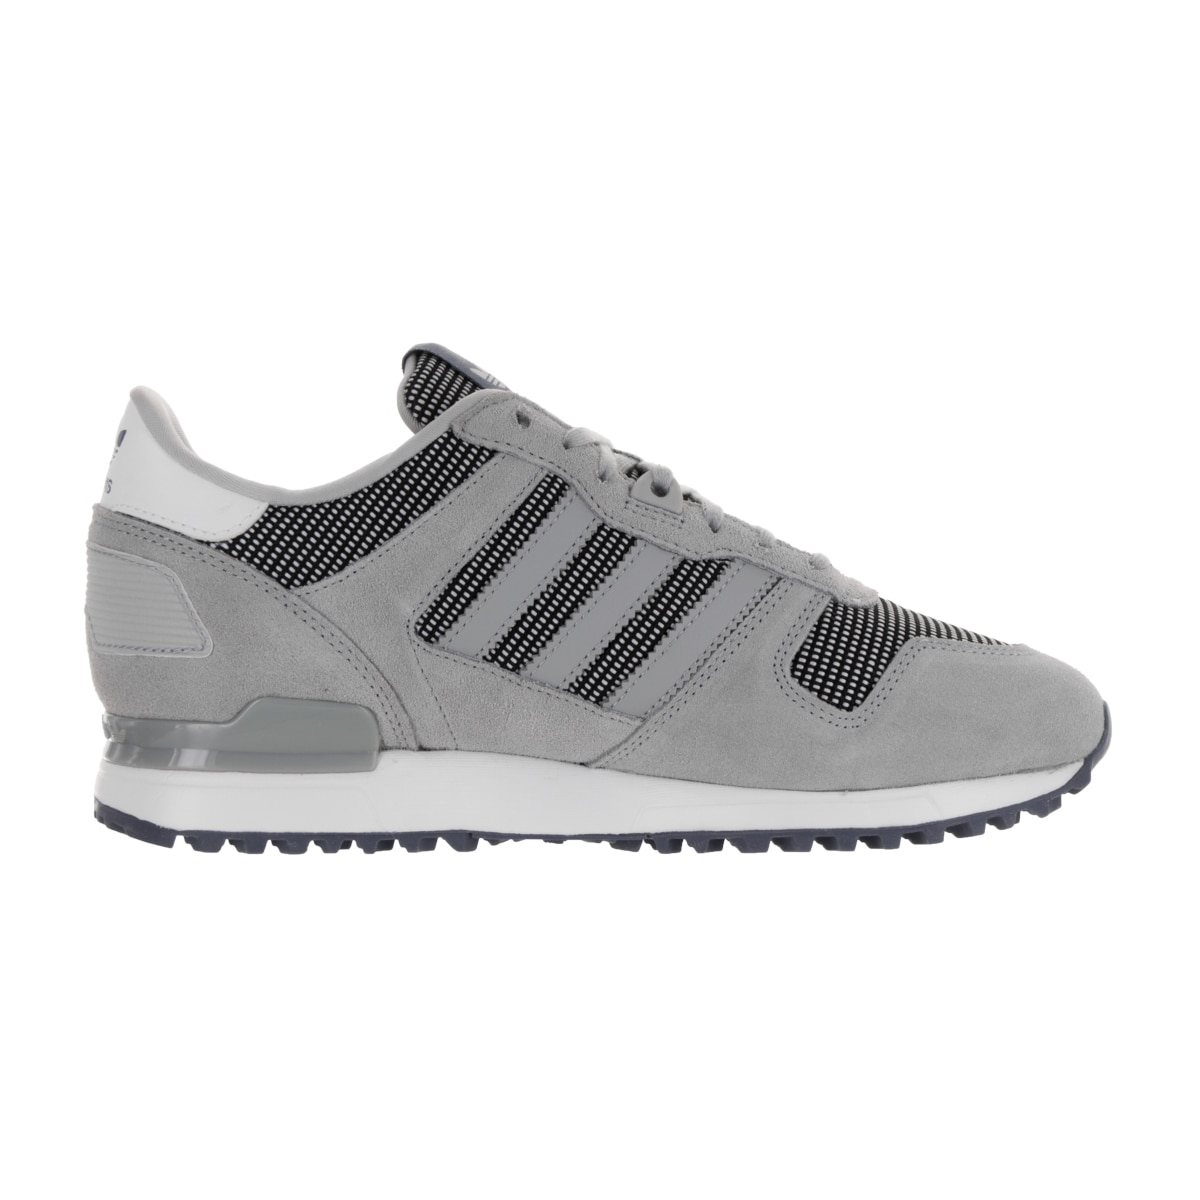 ebe164125ce27c Shop Adidas Women s ZX 700 W Originals Grey Suede Running Shoe - Free  Shipping Today - Overstock - 13344131